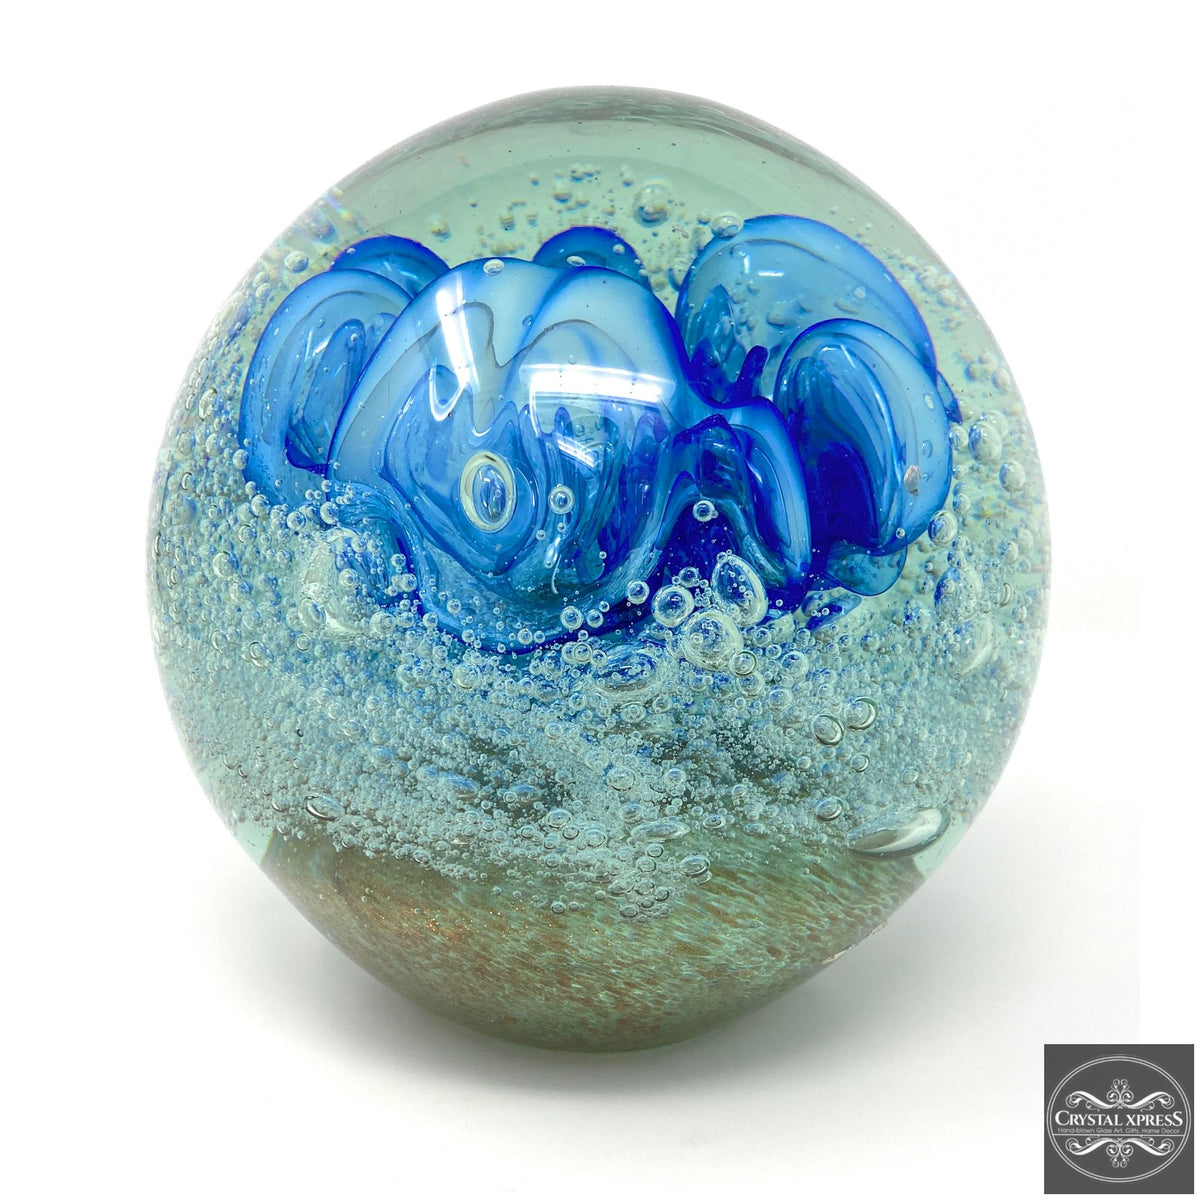 Paperweight with Blue Flower 4.5 inch DiameterCrystal Xpress